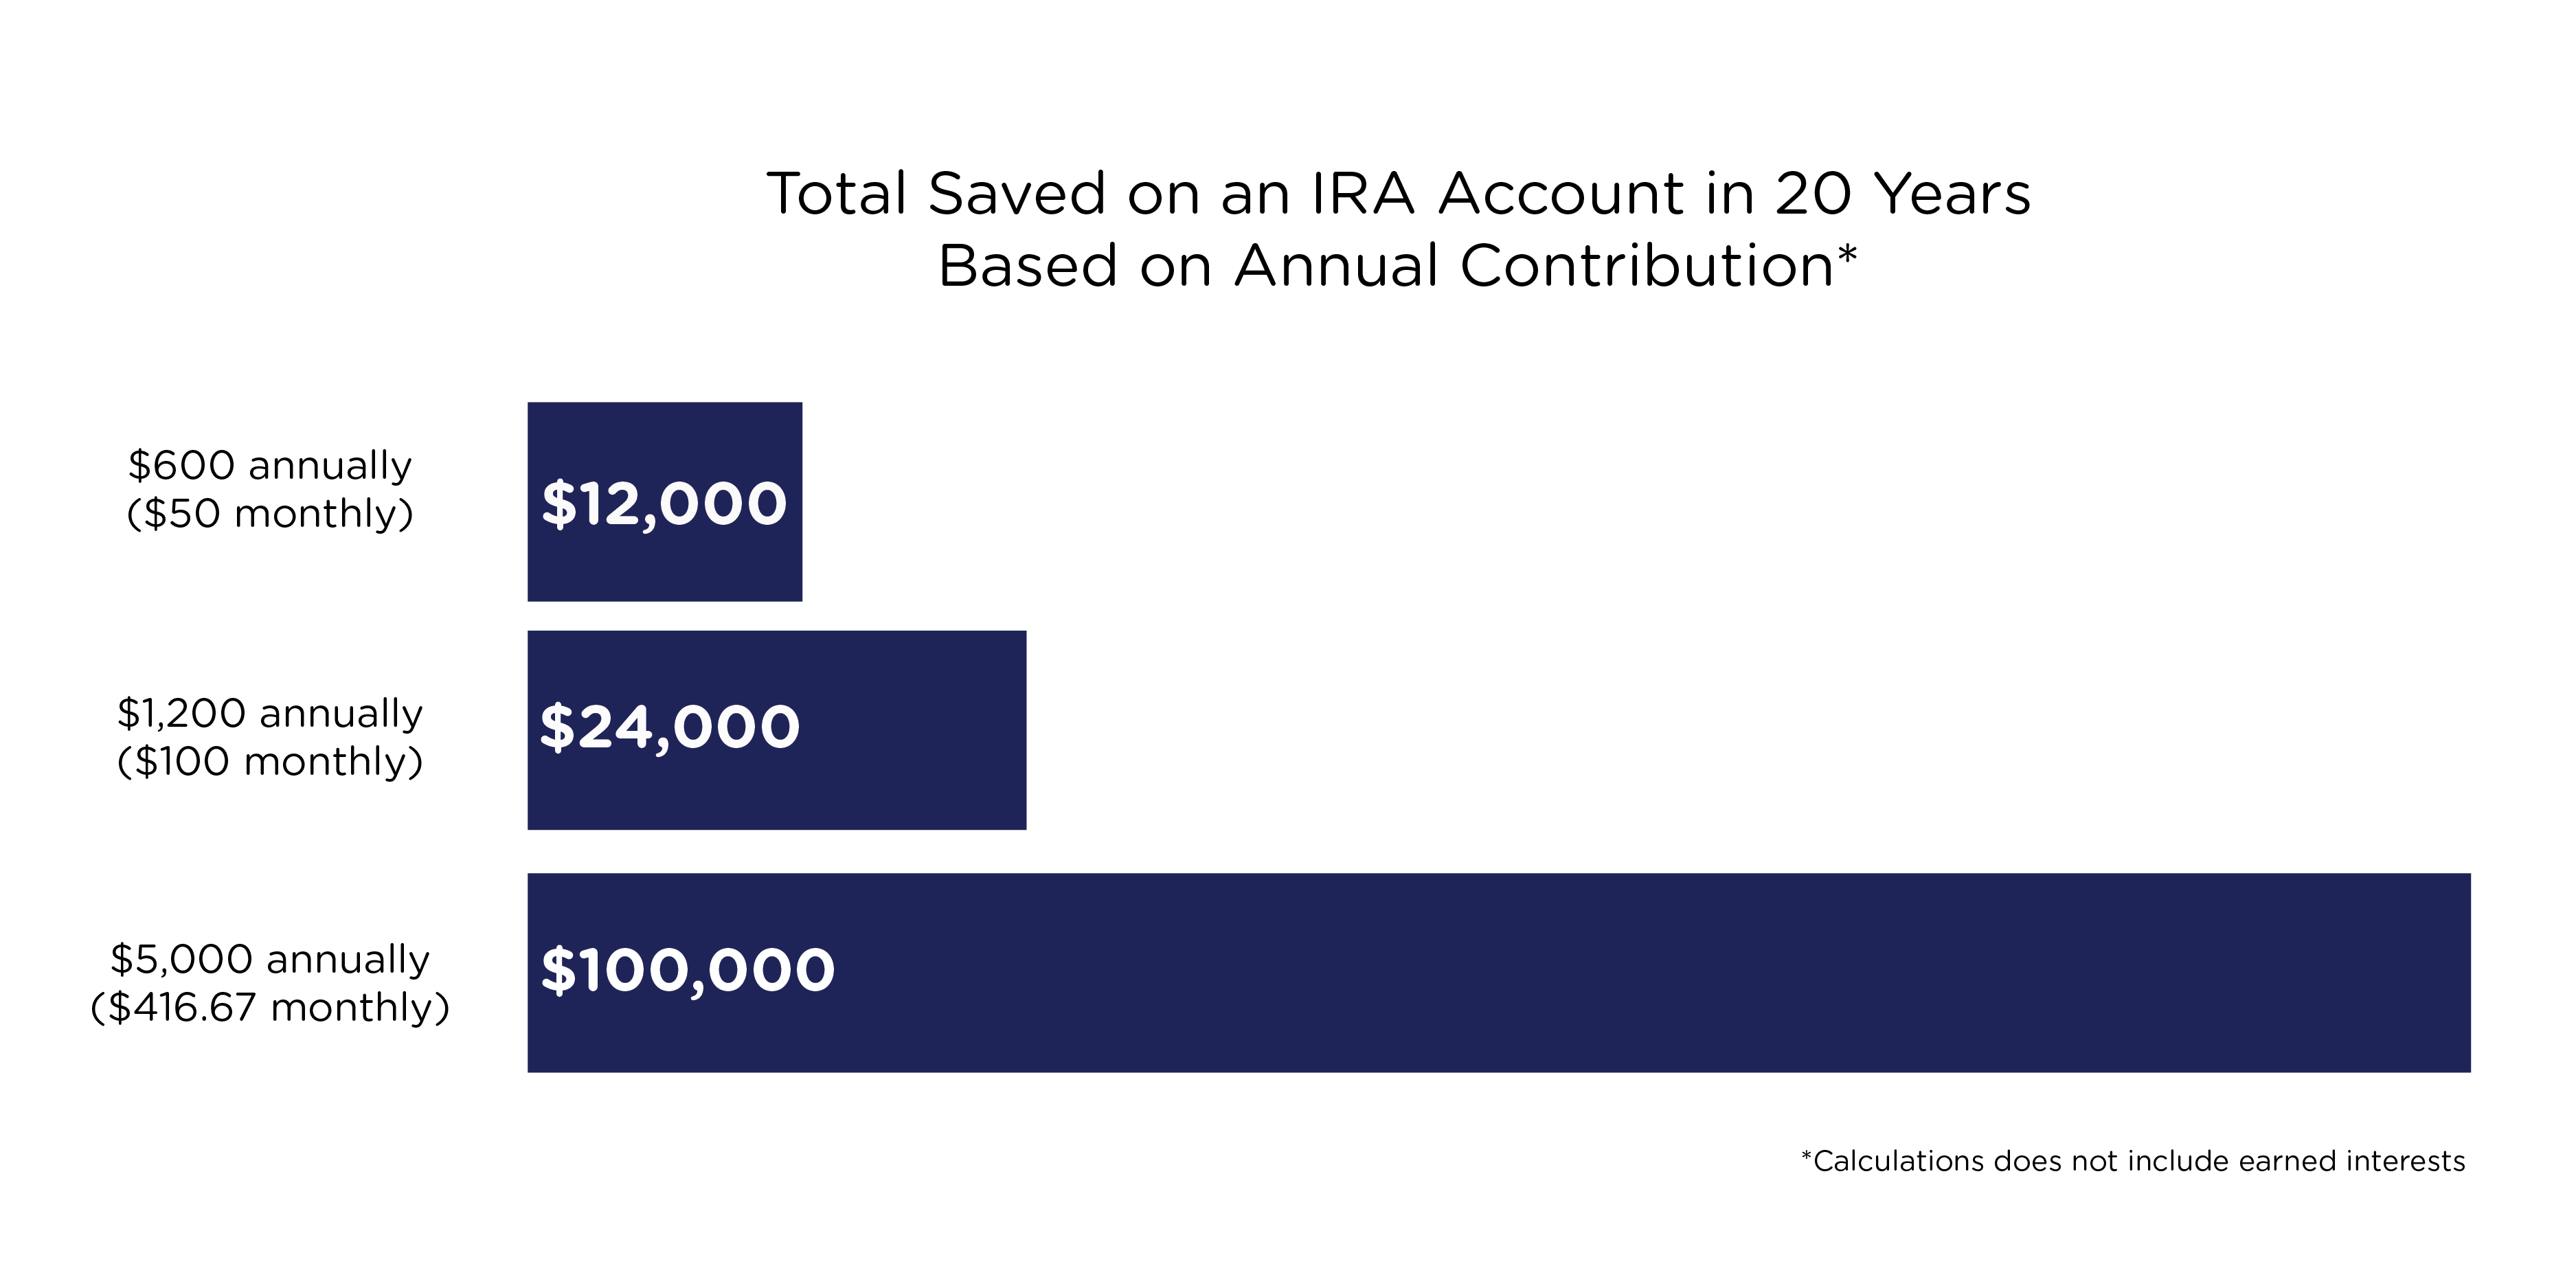 Can i exercise stock options in my ira